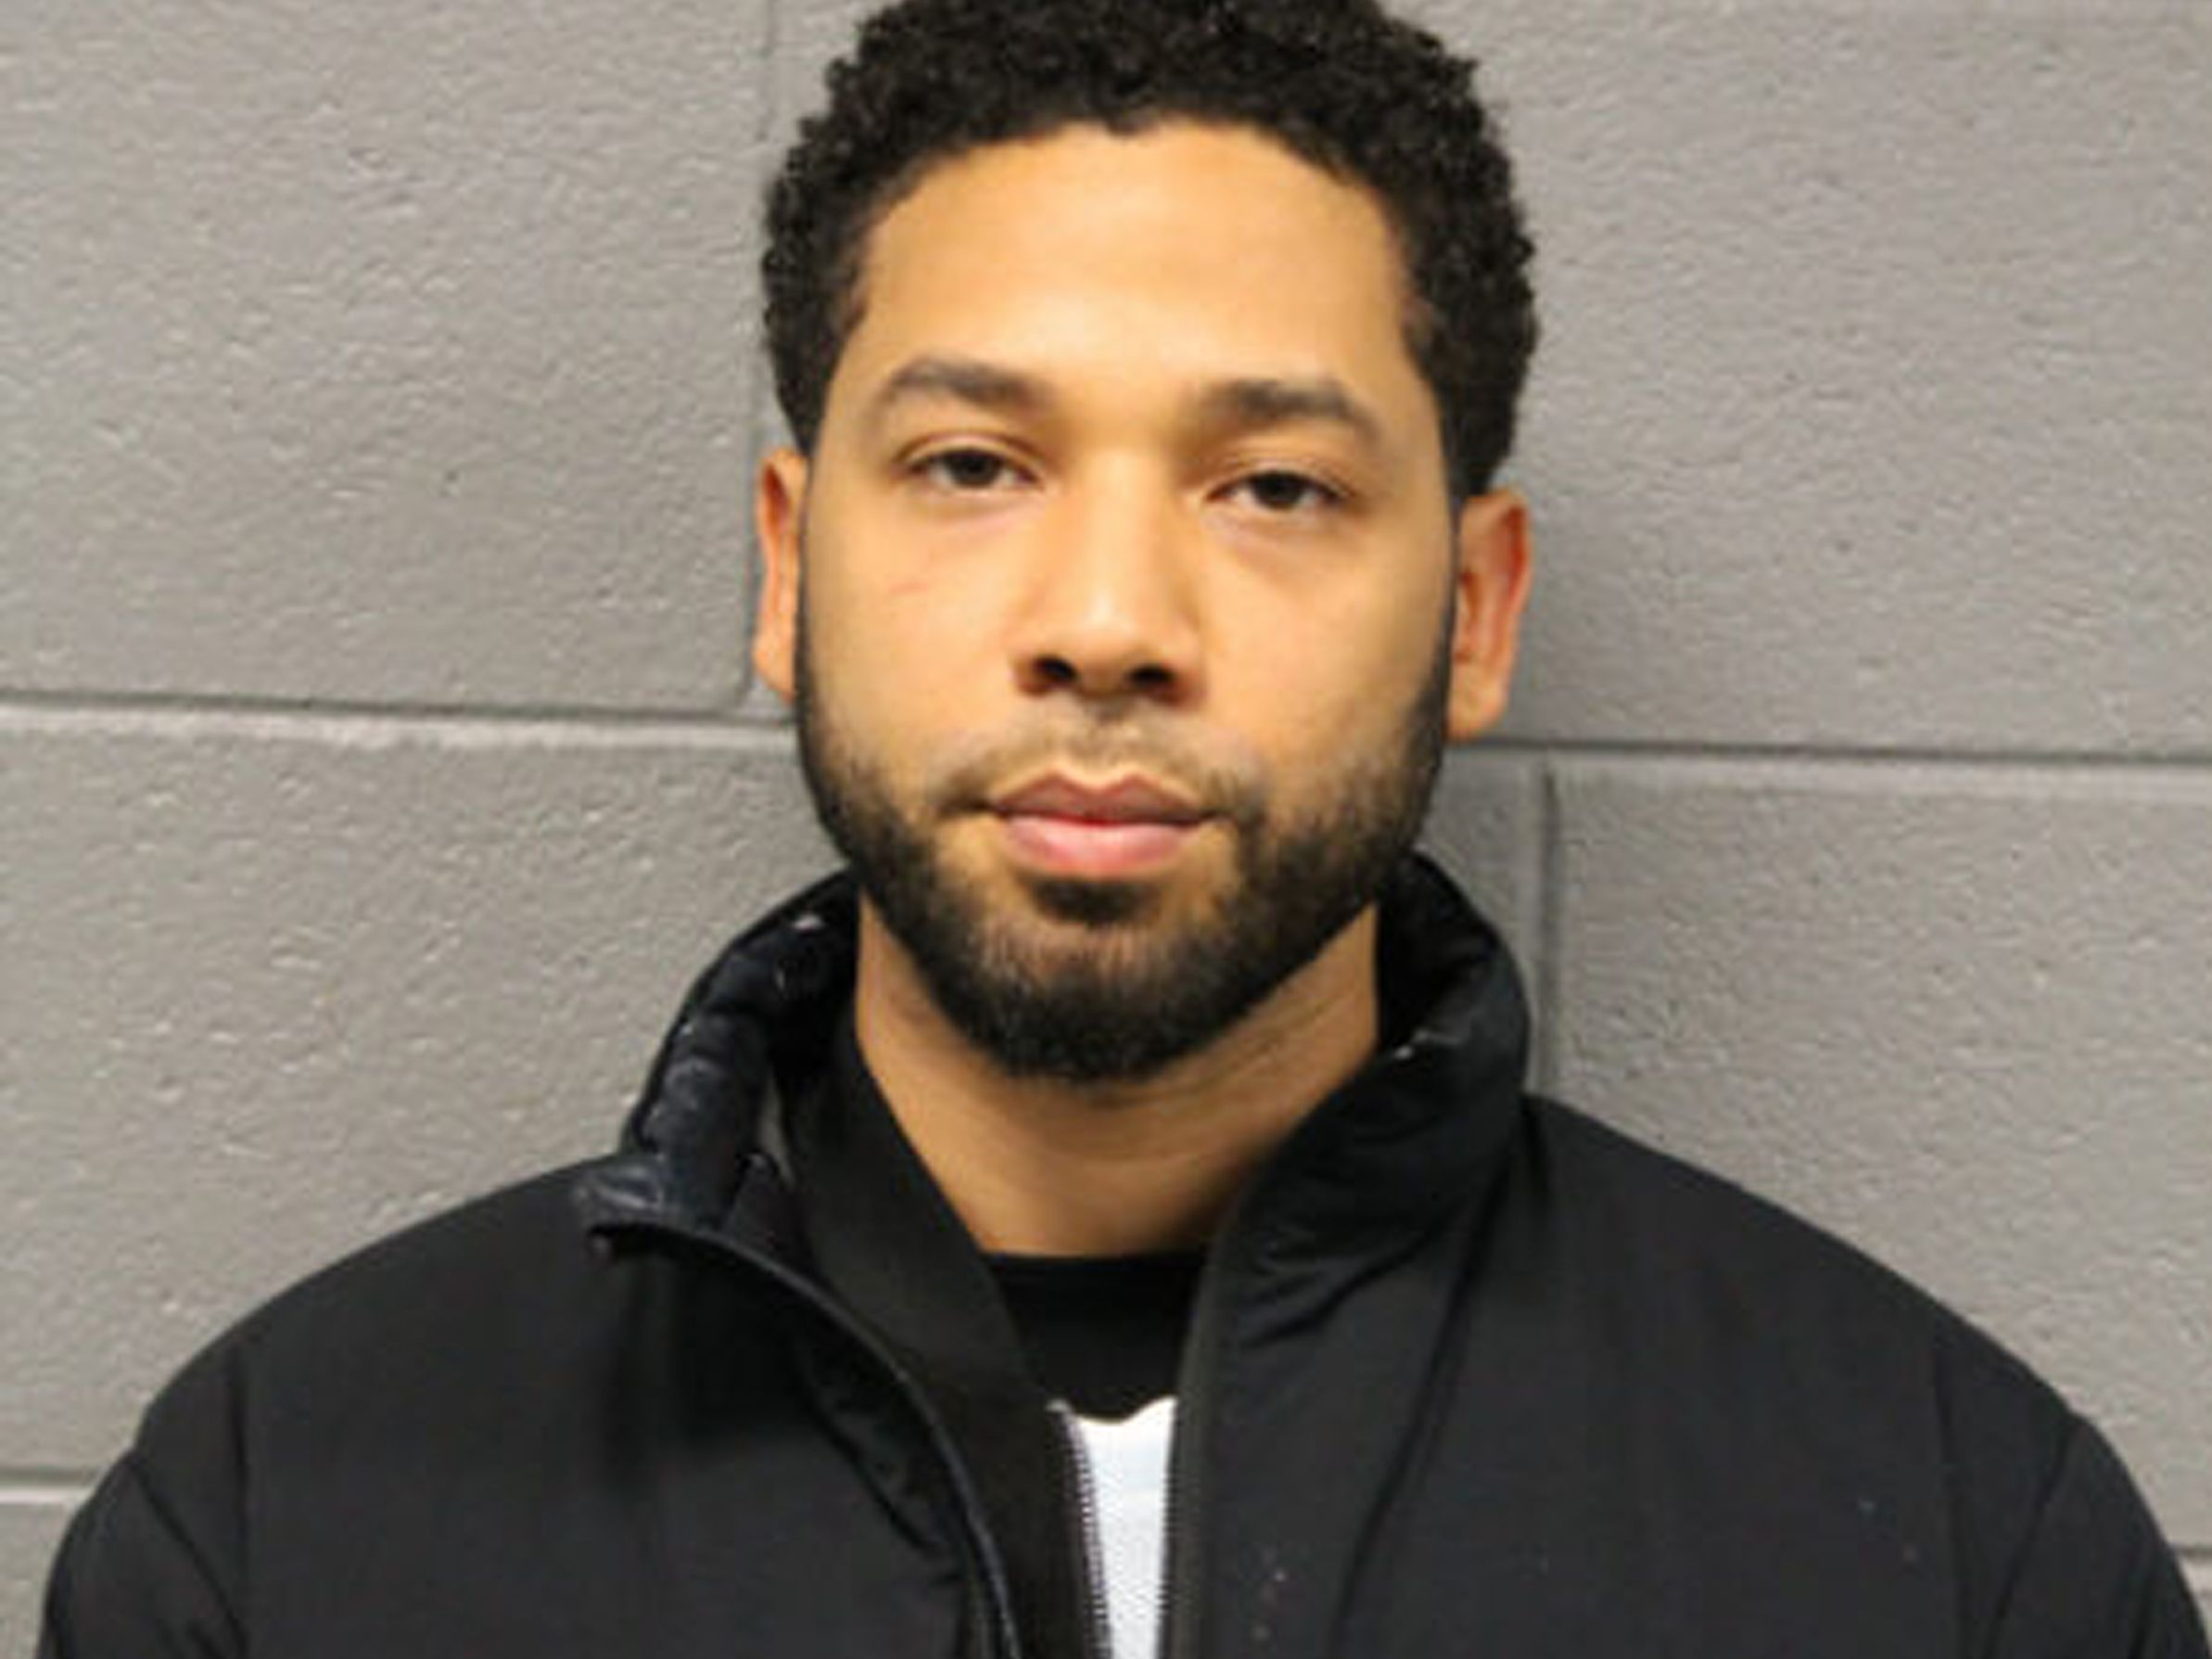 Jussie Smollett's bail set at $100K; he must surrender passport